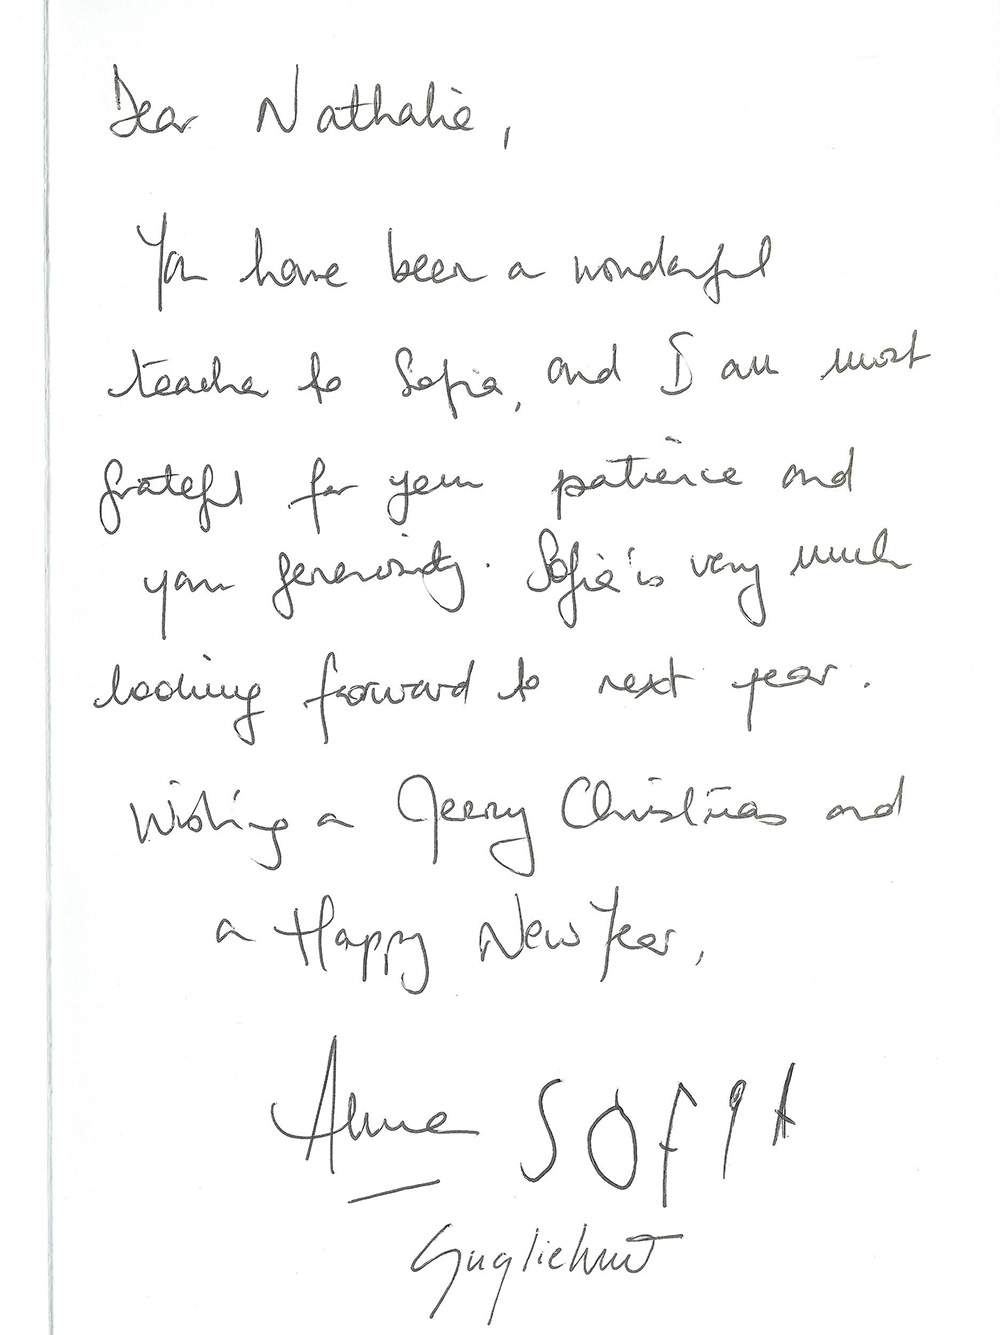 Greetings Letter from Sofia's parent